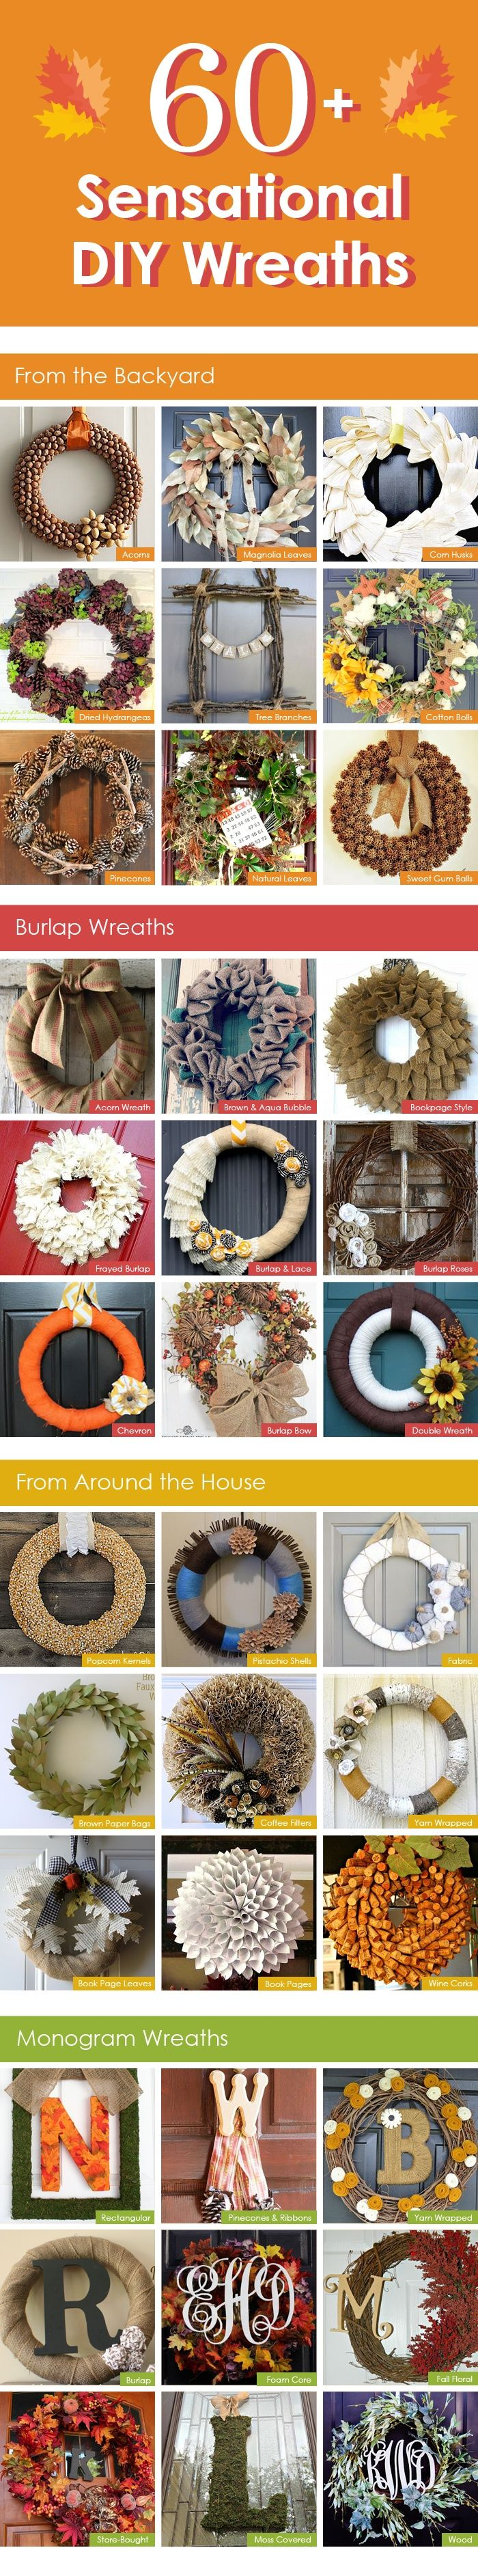 60+ Sensational DIY Wreaths For the Fall: Wreaths from things in the backyard, around the home, burlap wreaths, and monogram wreaths! Oh, and you're welcome! :)